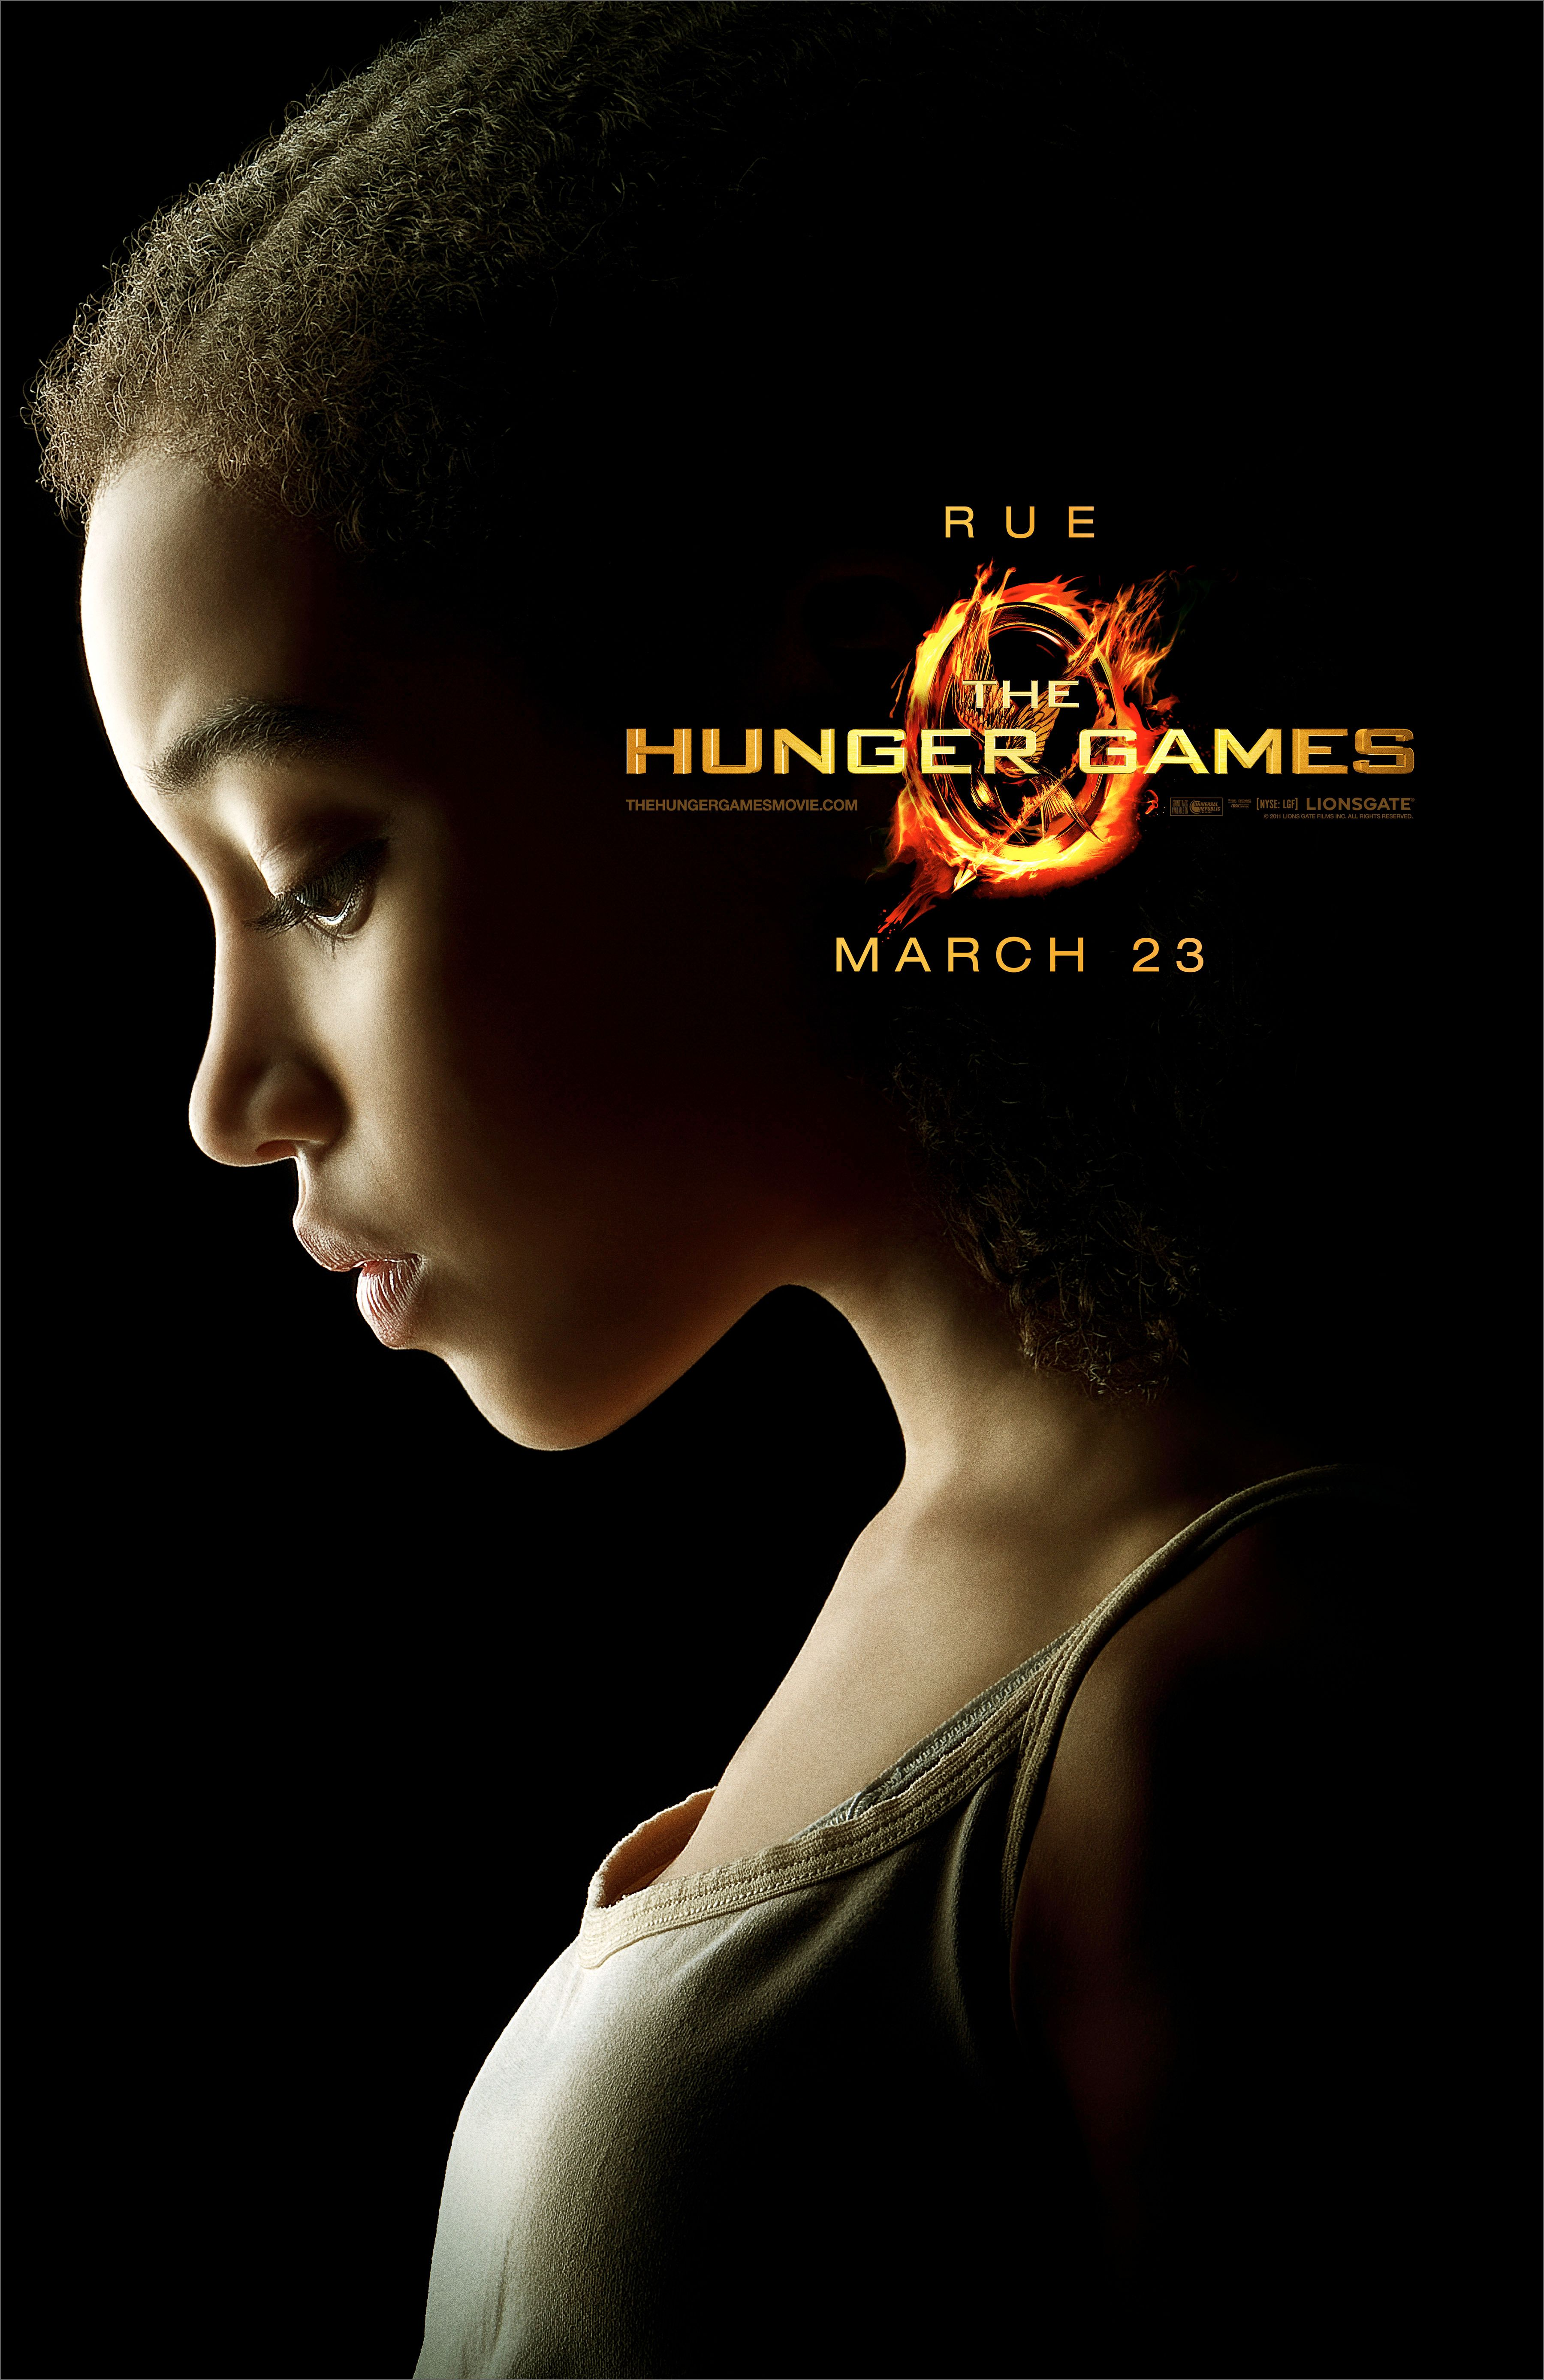 THE HUNGER GAMES Character Posters | Collider